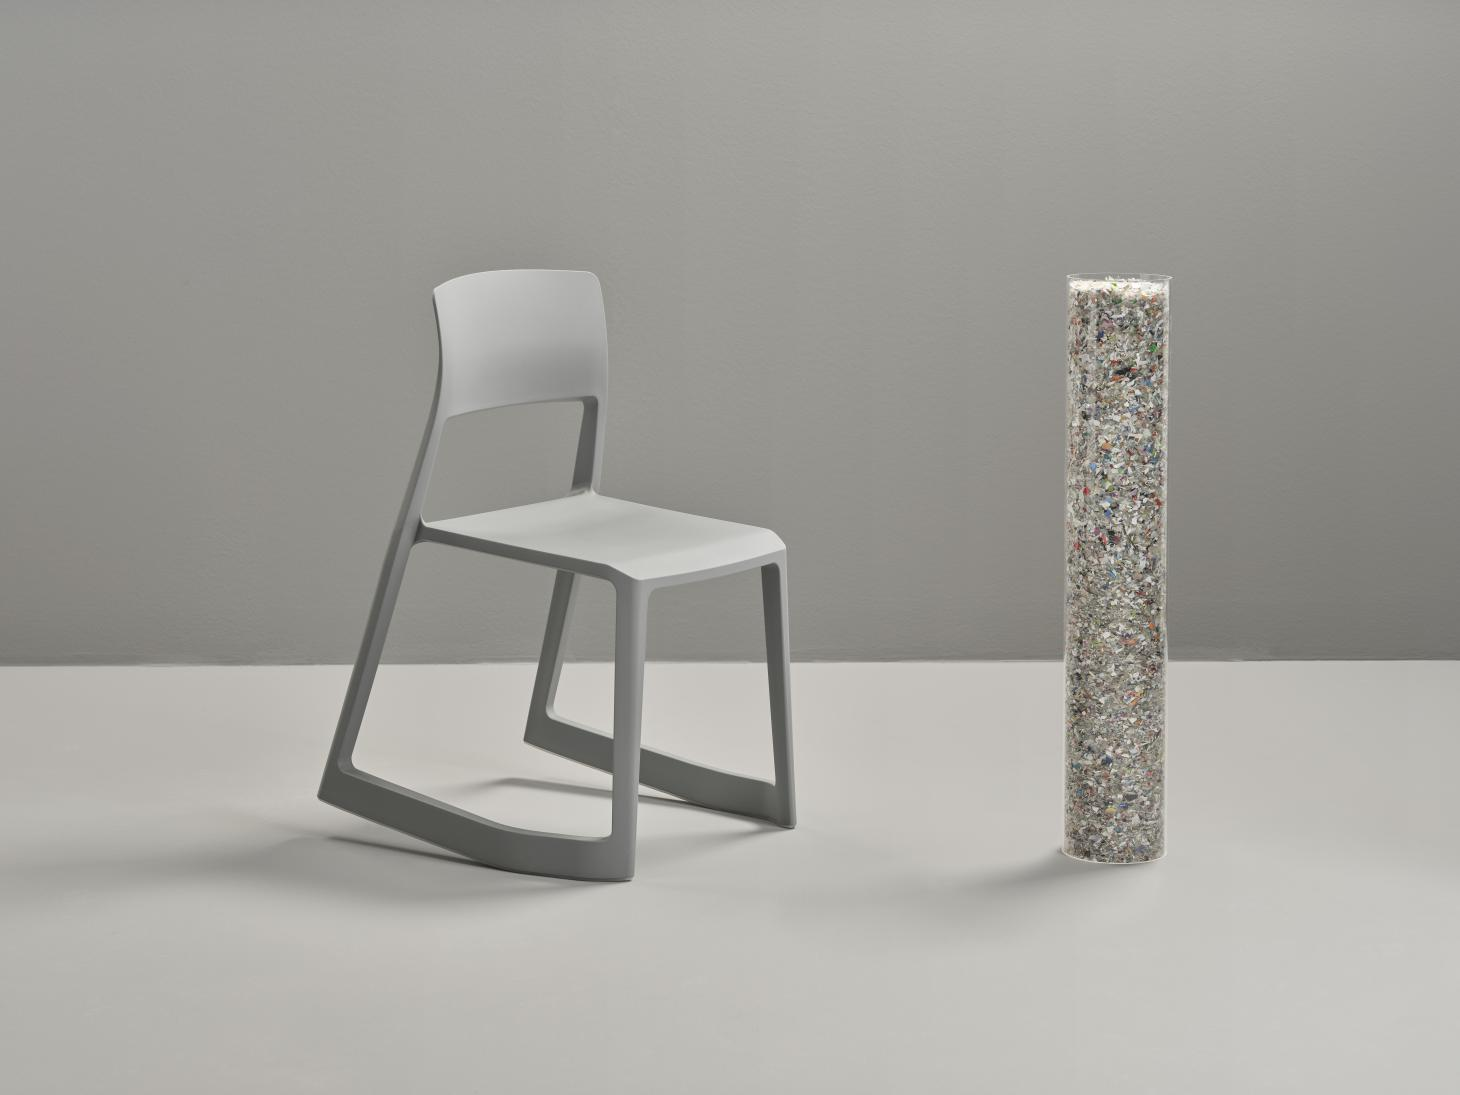 Barber Osgerby chair for Vitra